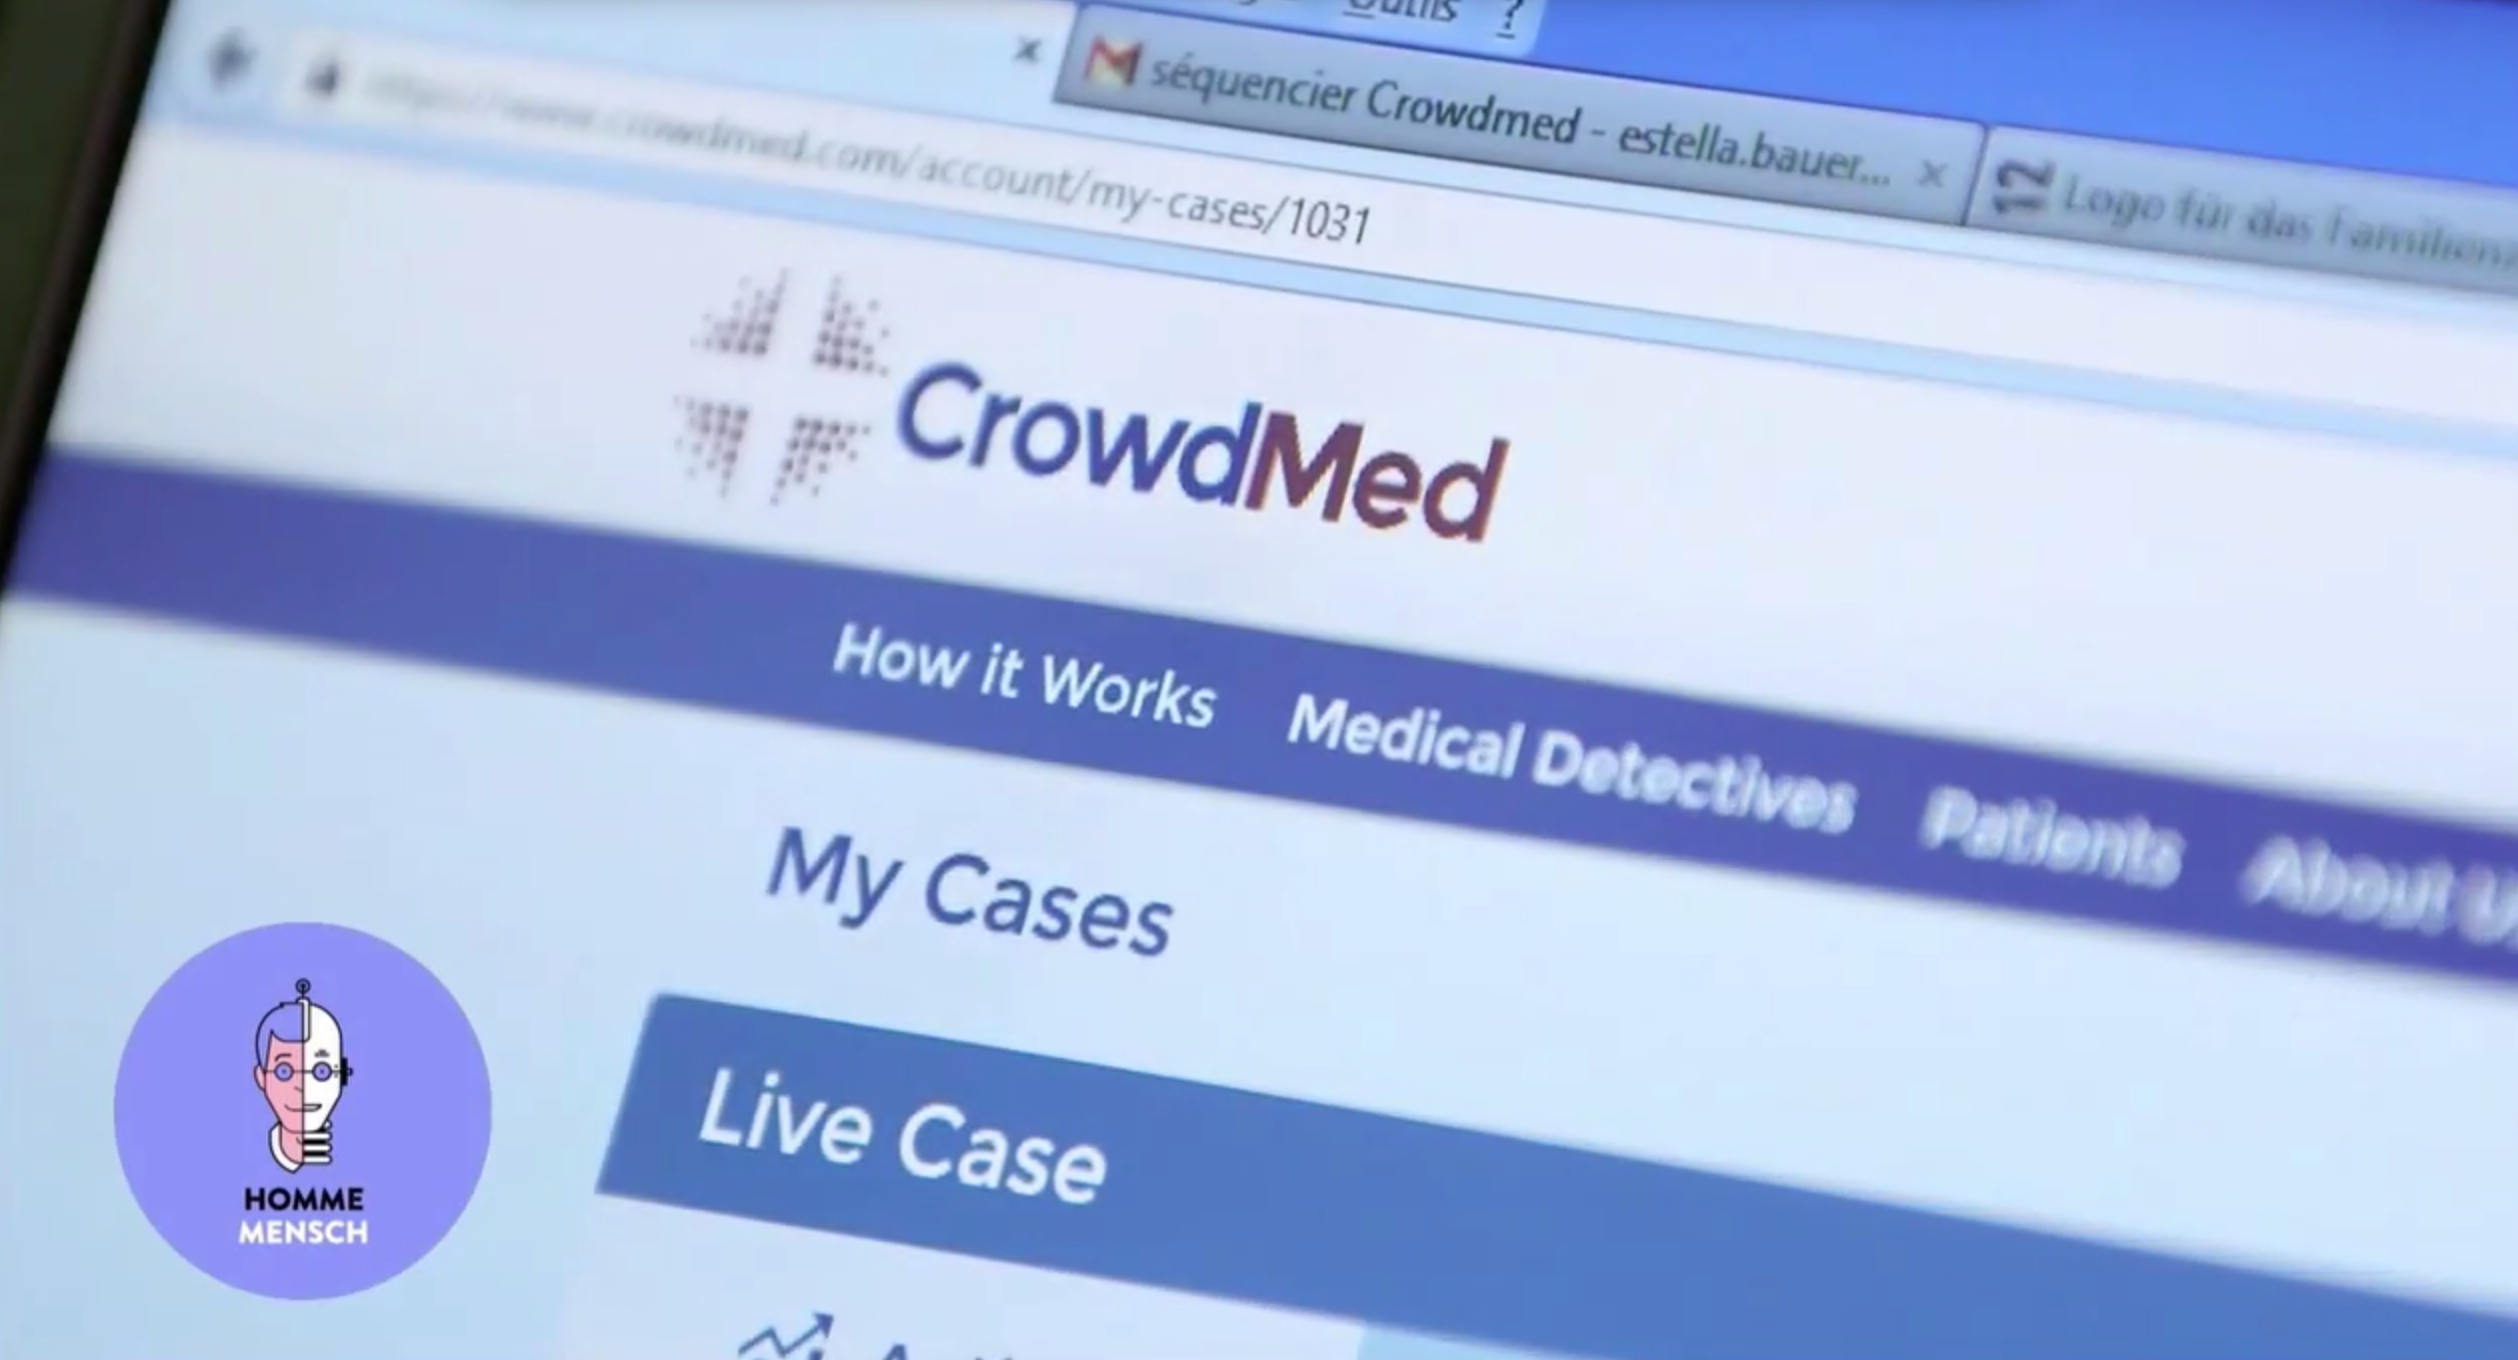 Plateforme de crowdsourcing médical